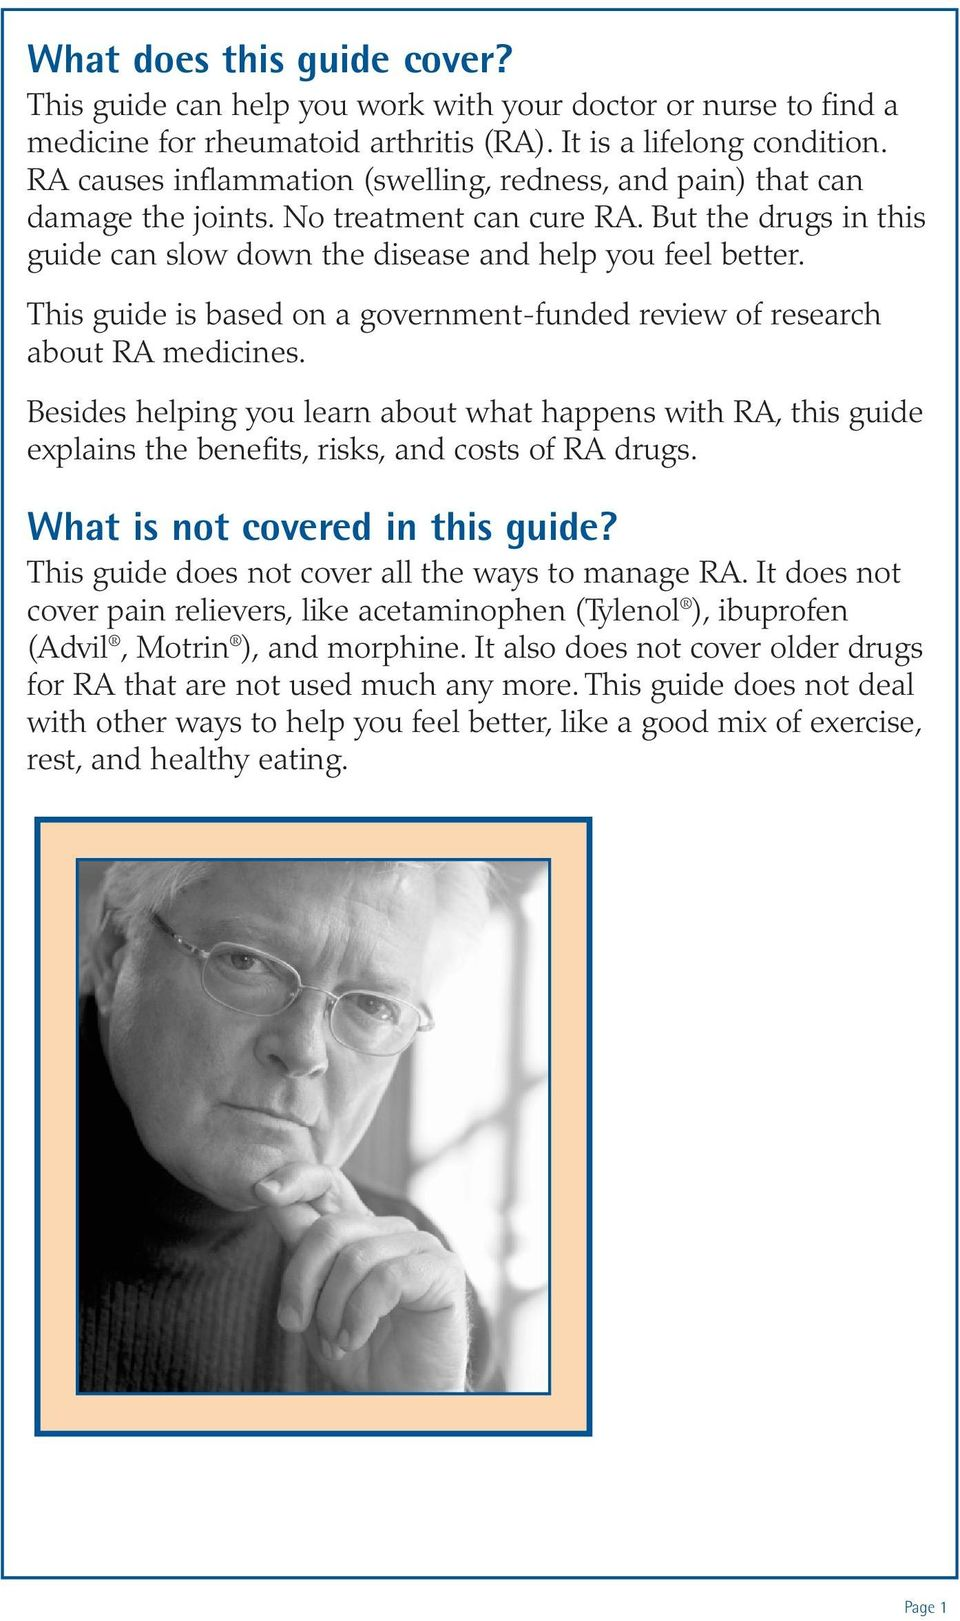 This guide is based on a government-funded review of research about RA medicines. Besides helping you learn about what happens with RA, this guide explains the benefits, risks, and costs of RA drugs.